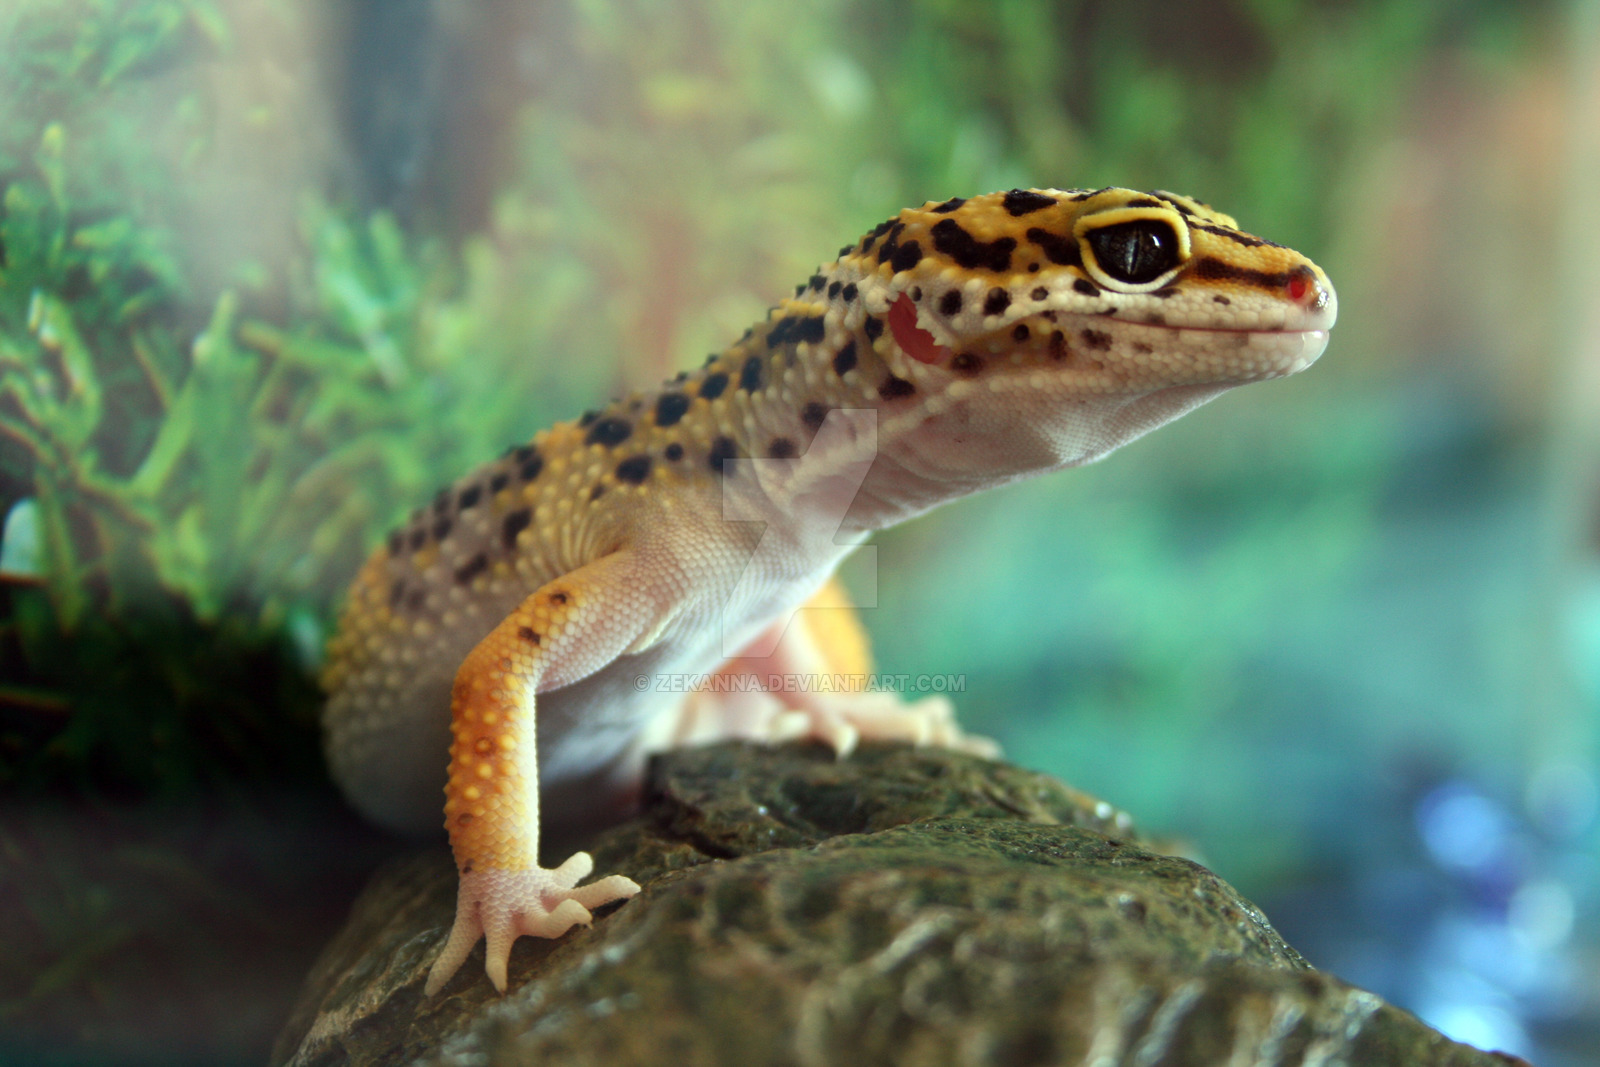 Leopard Gecko Wallpapers HD Download 1600x1067